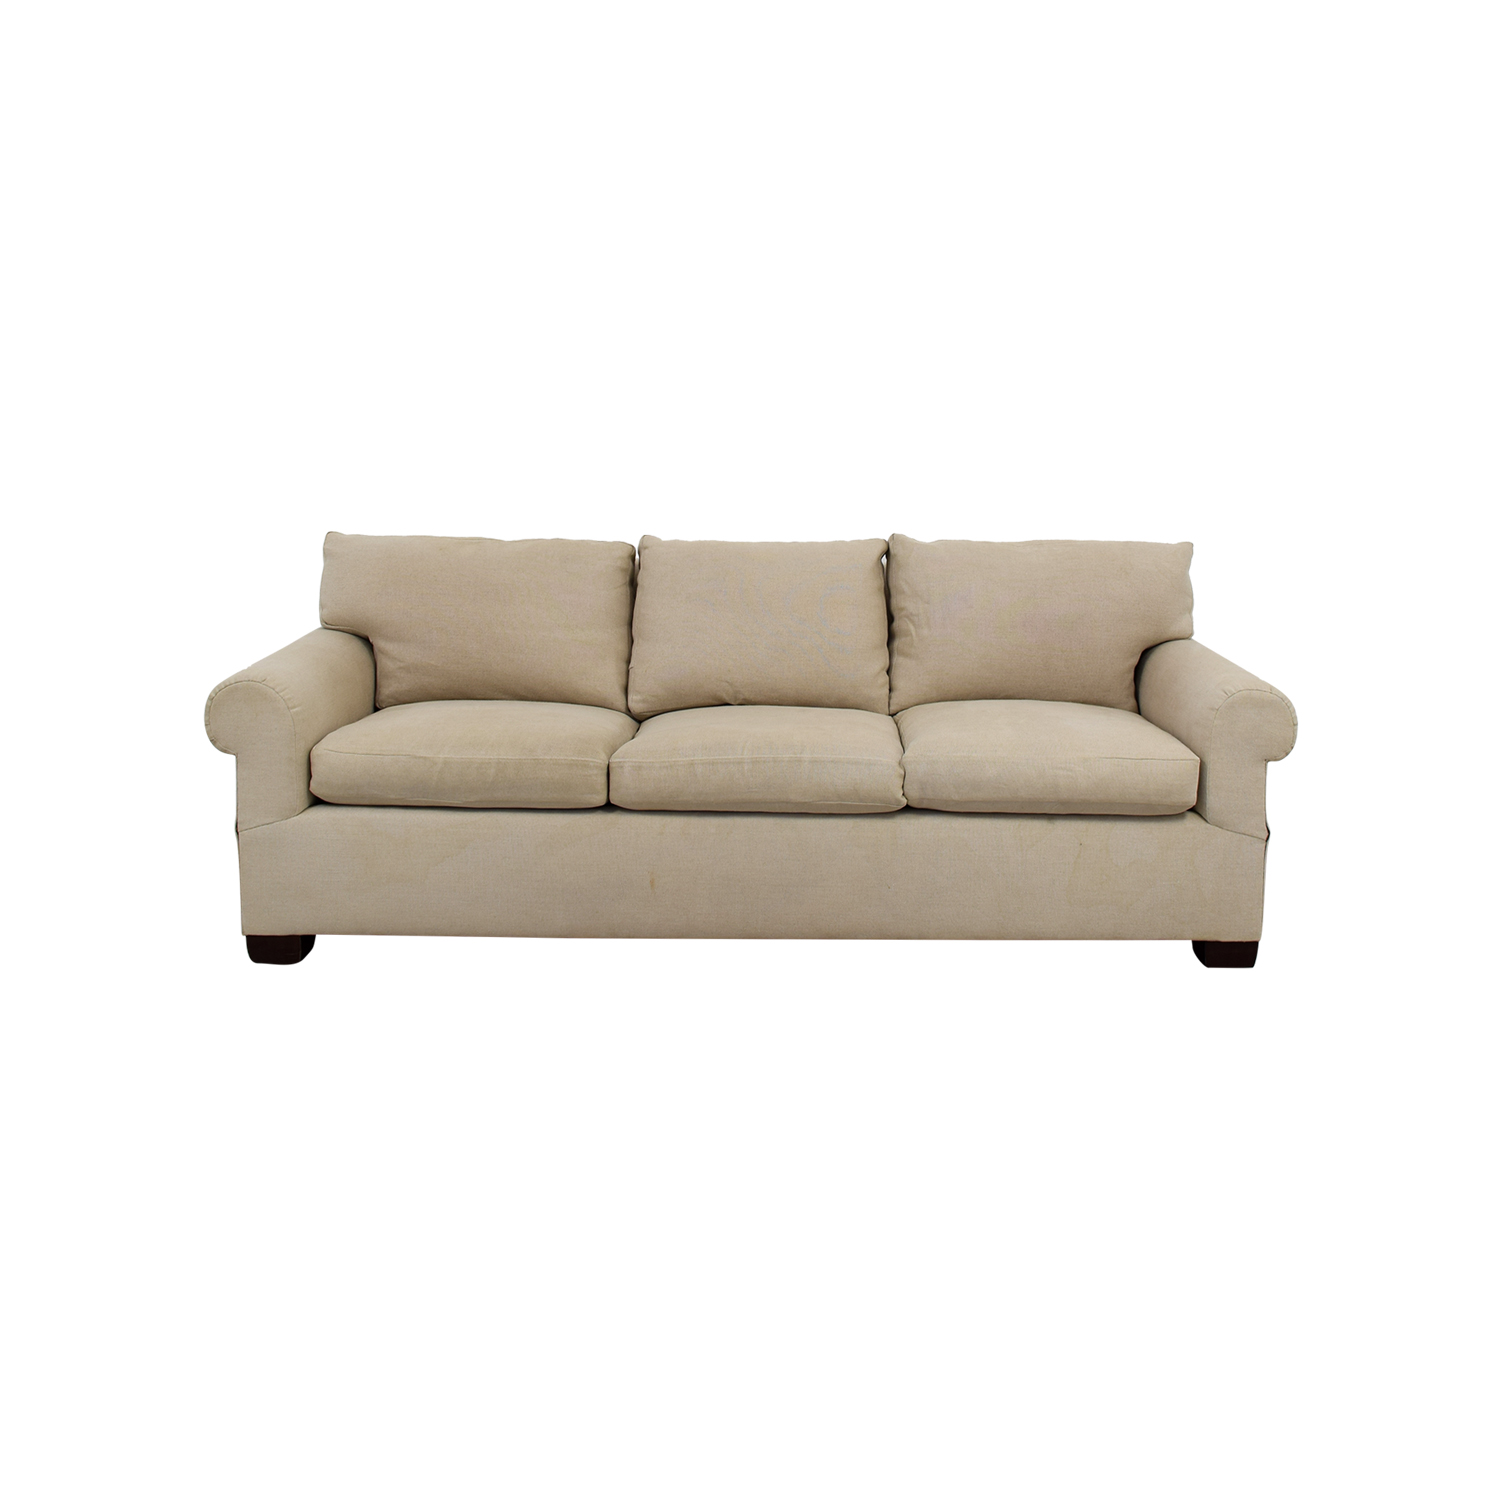 Sofa Darwin Interio Carlyle Sofa Reviews Deep Sofas Furniture Corner Bed Sale Pay